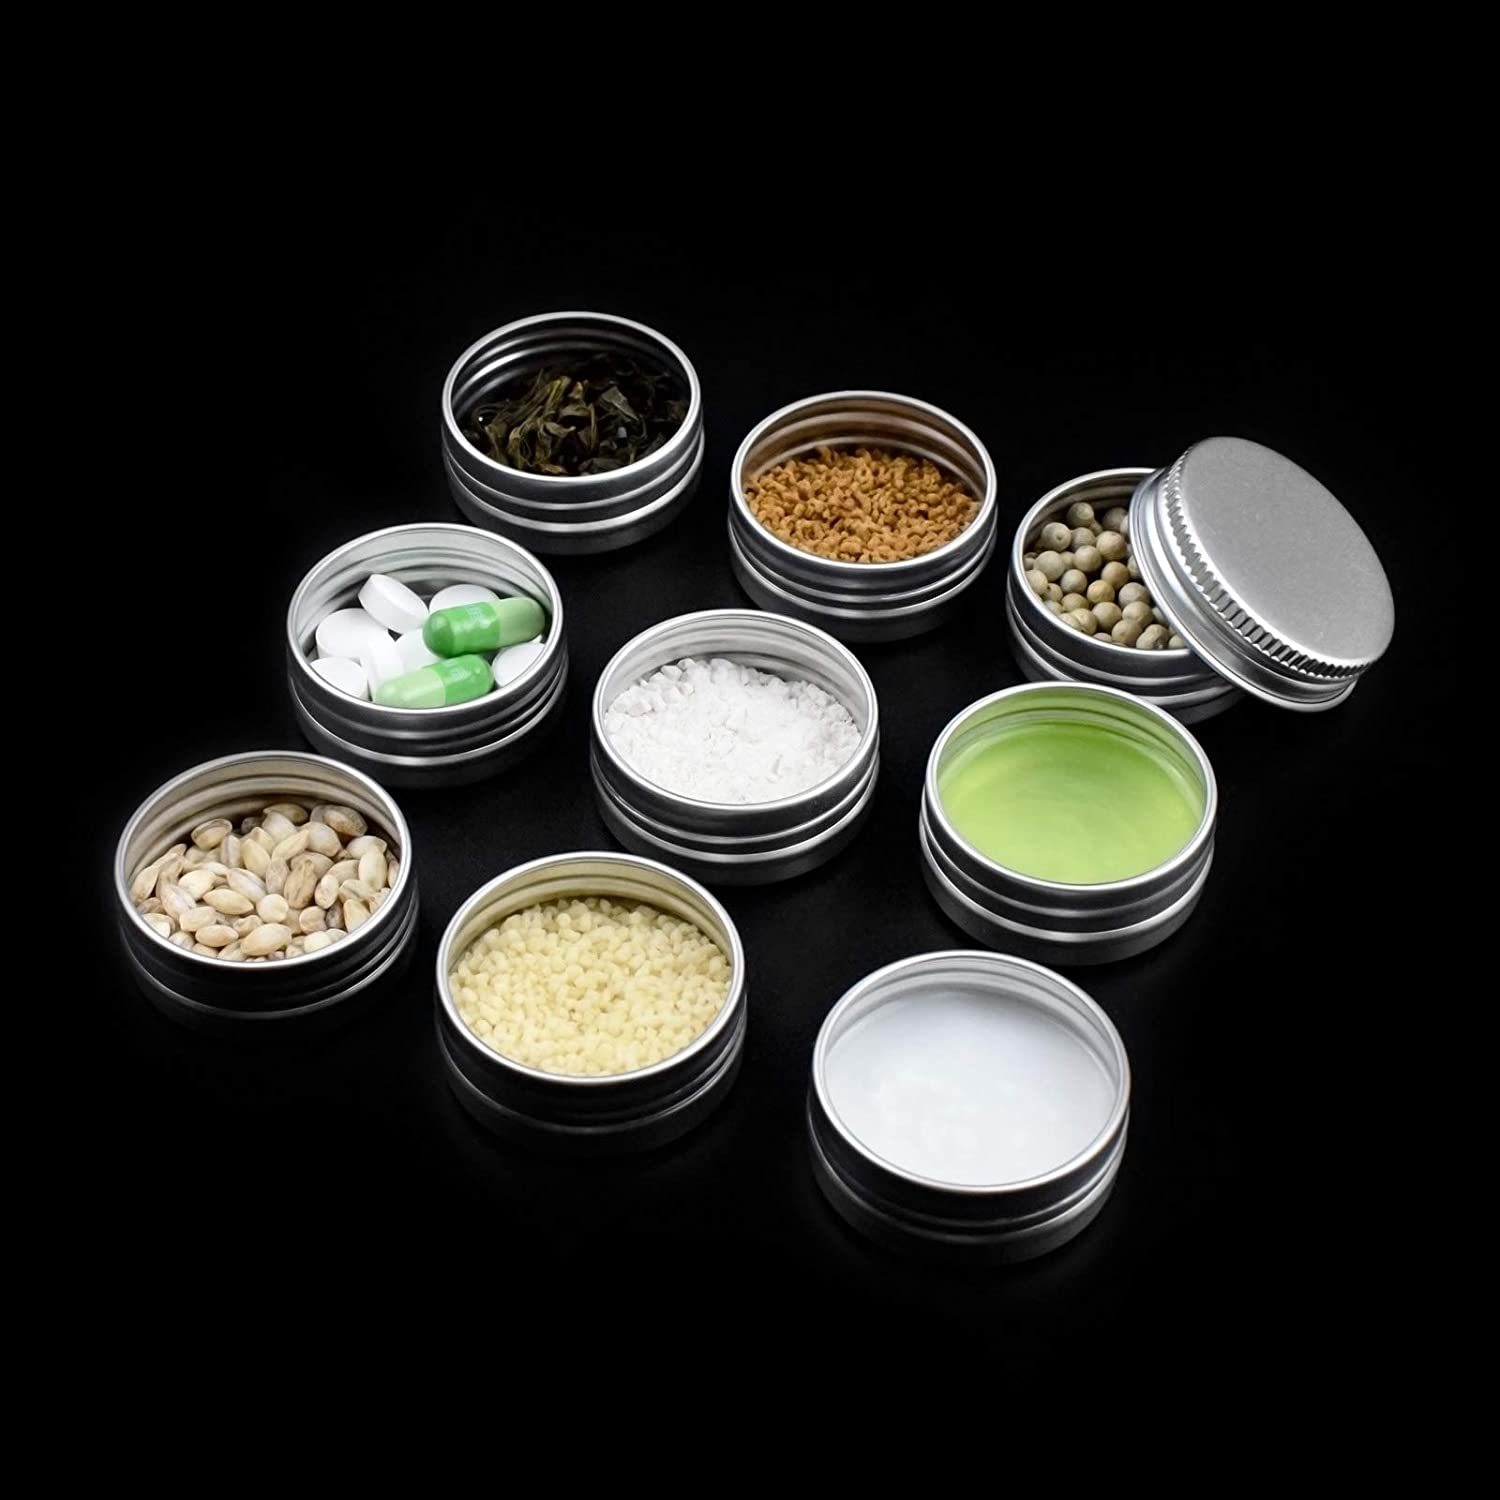 Familion 1//2 oz Aluminum Tin Cans Empty Containers Screw Top Round Metal Cans with Screw Lids 24 Pack